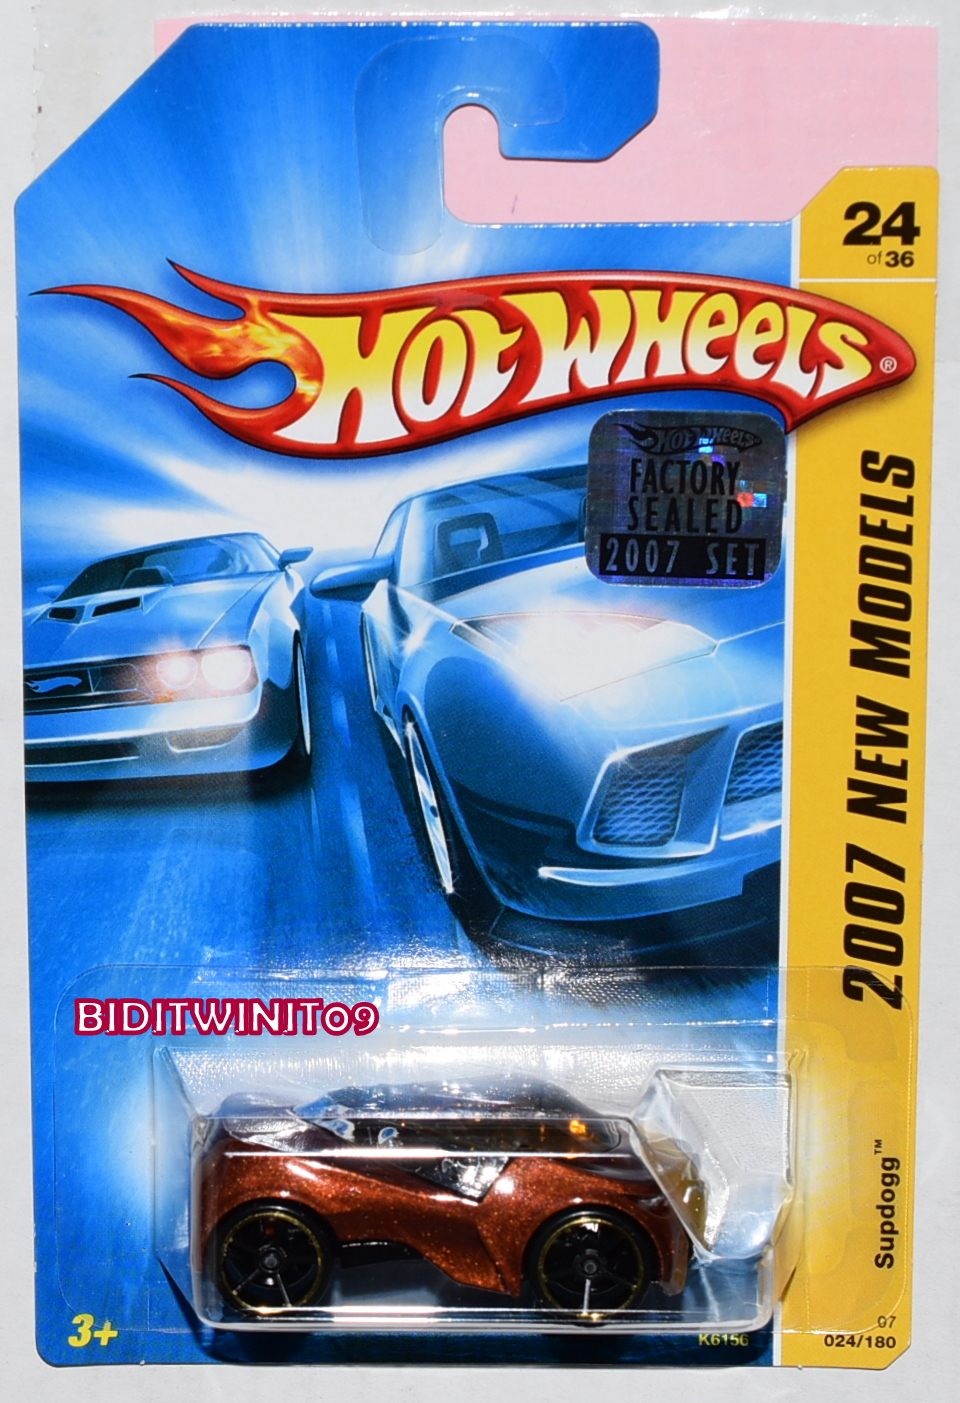 HOT WHEELS 2007 NEW MODELS SUPDOGG FACTORY SEALED - Click Image to Close